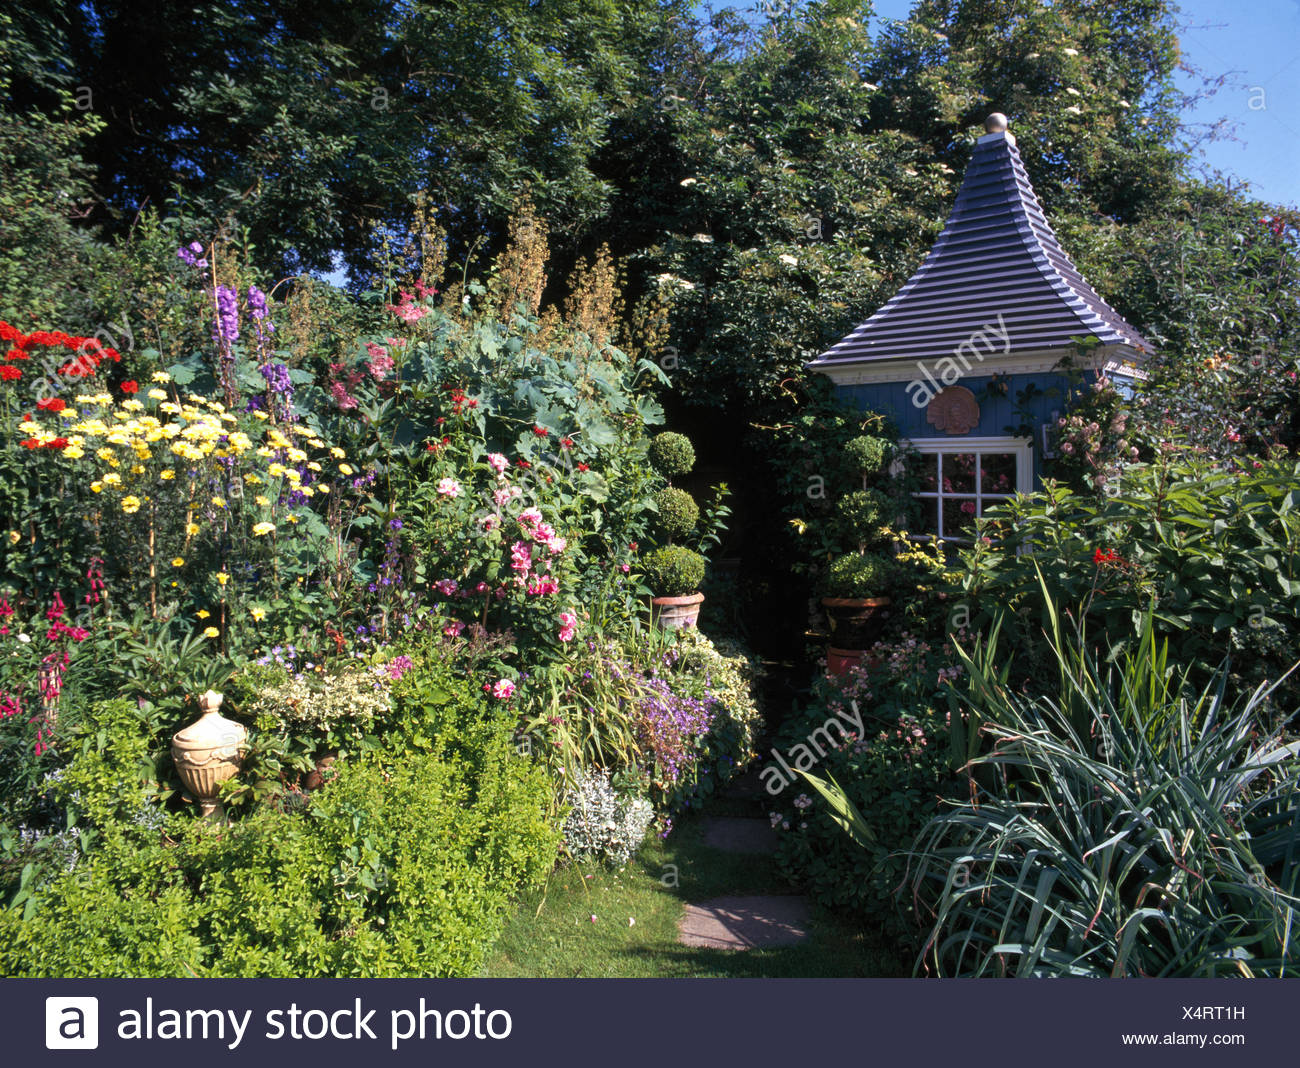 Colorful Perennials In Border Of Country Garden With Elegant Gazebo